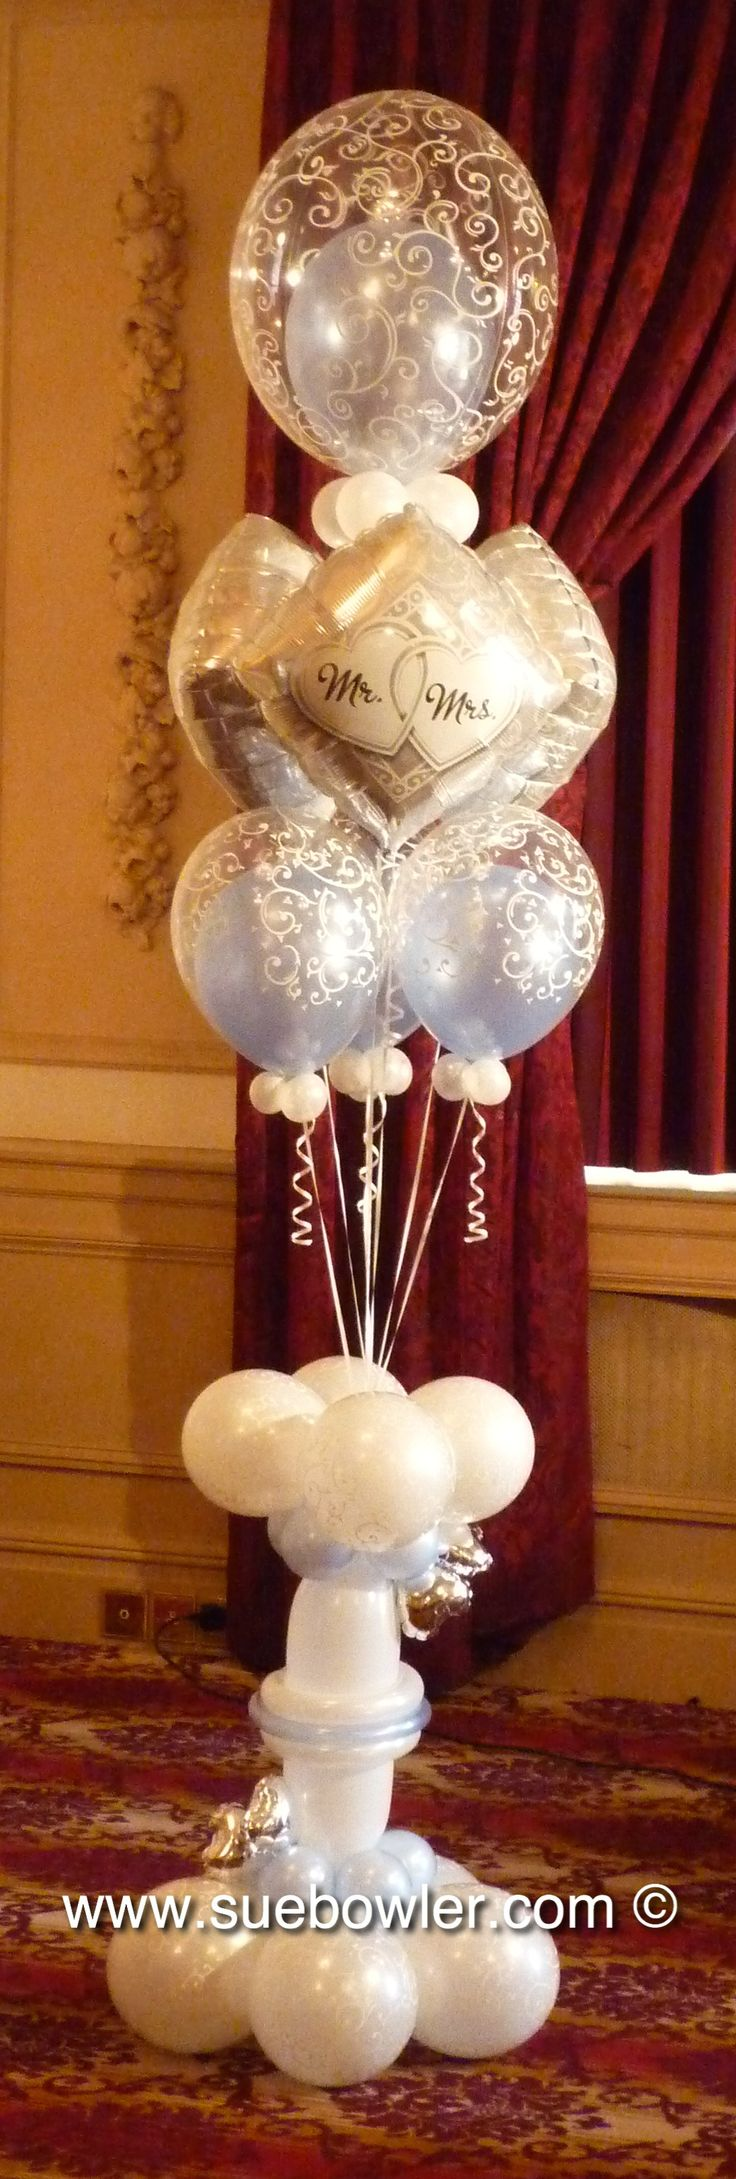 'Mr & Mrs' - Elegant Pedestal Bouquet with  balloons and Bubble